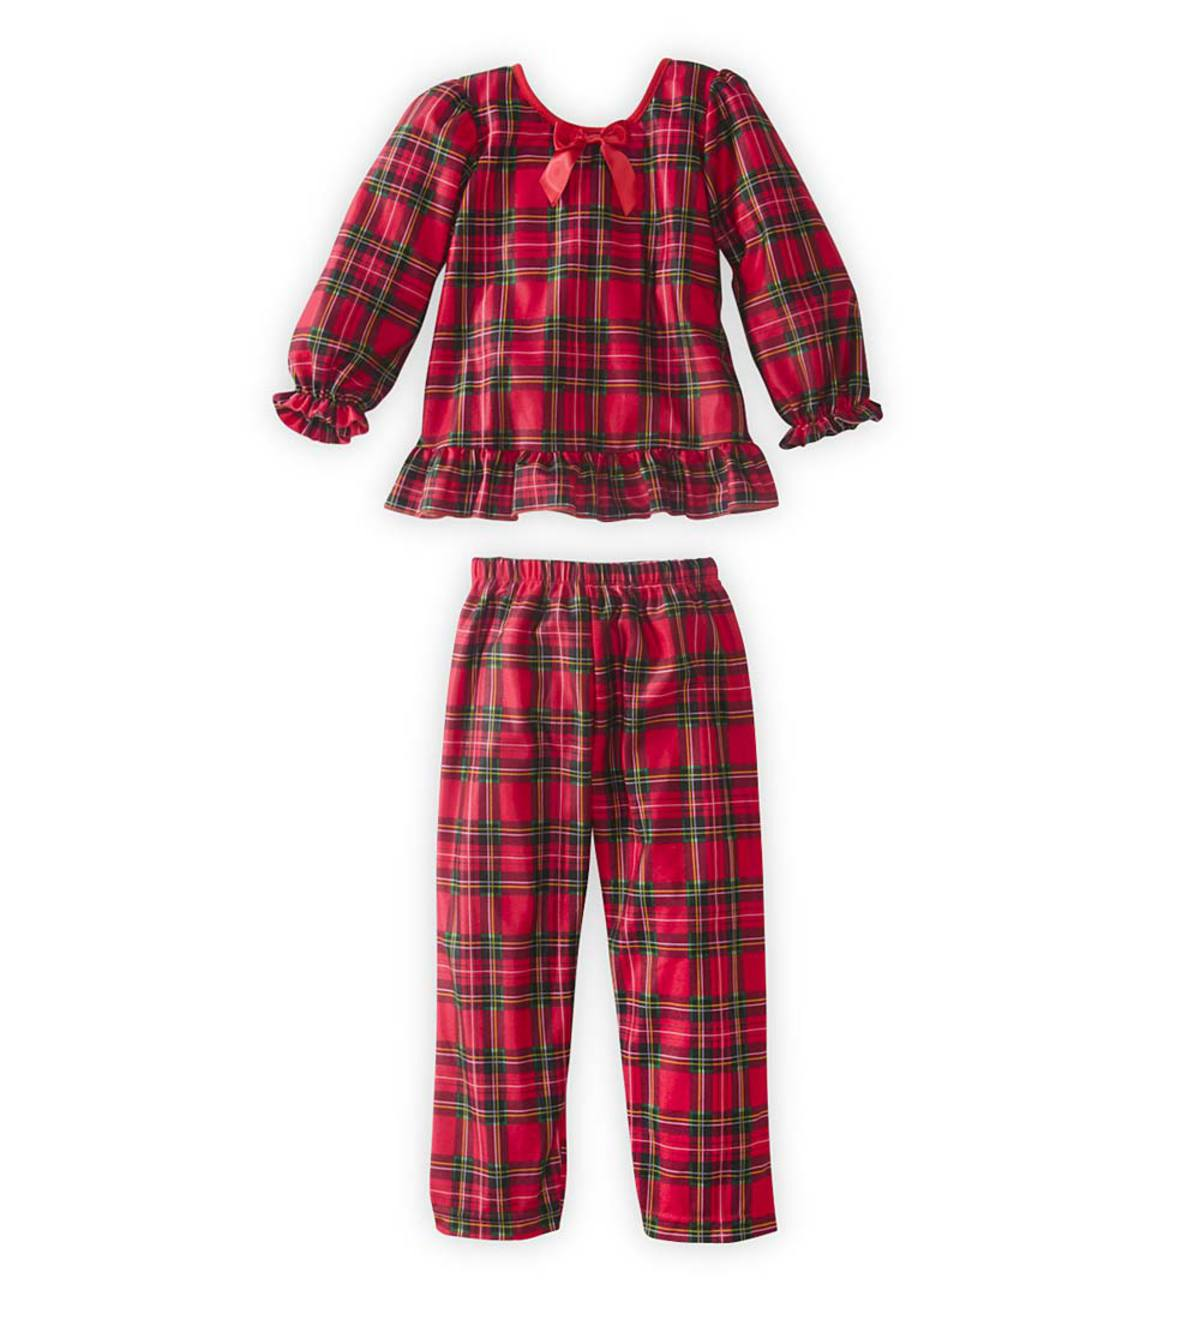 Plaid Ruffle Pajamas - Red - 8